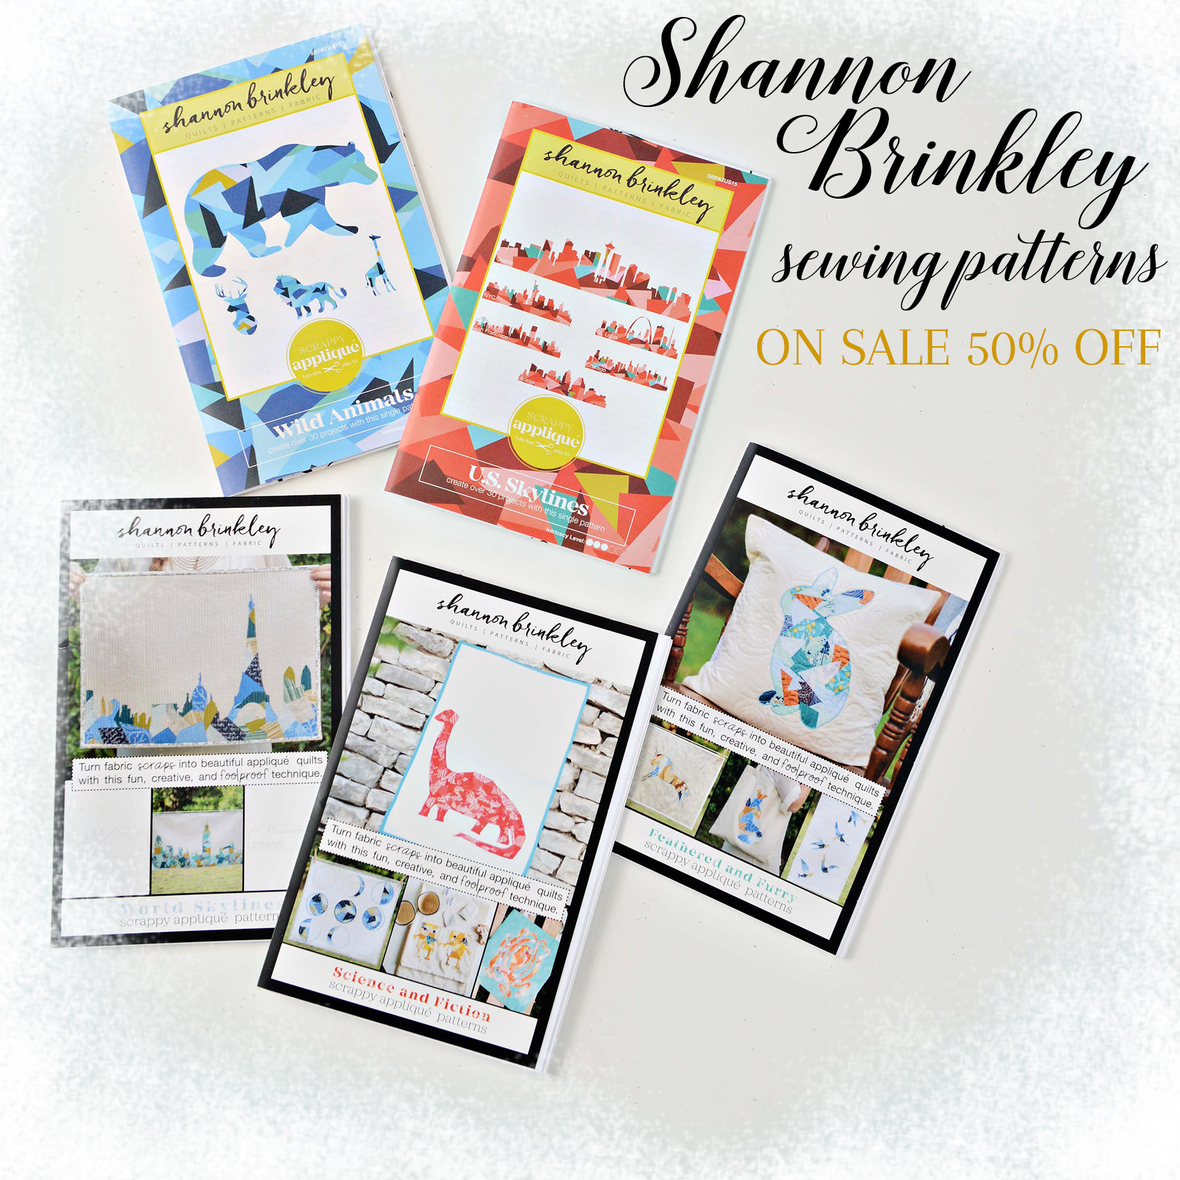 Shannon Brinkley Patterns On Sale with frosty border 6x6 text